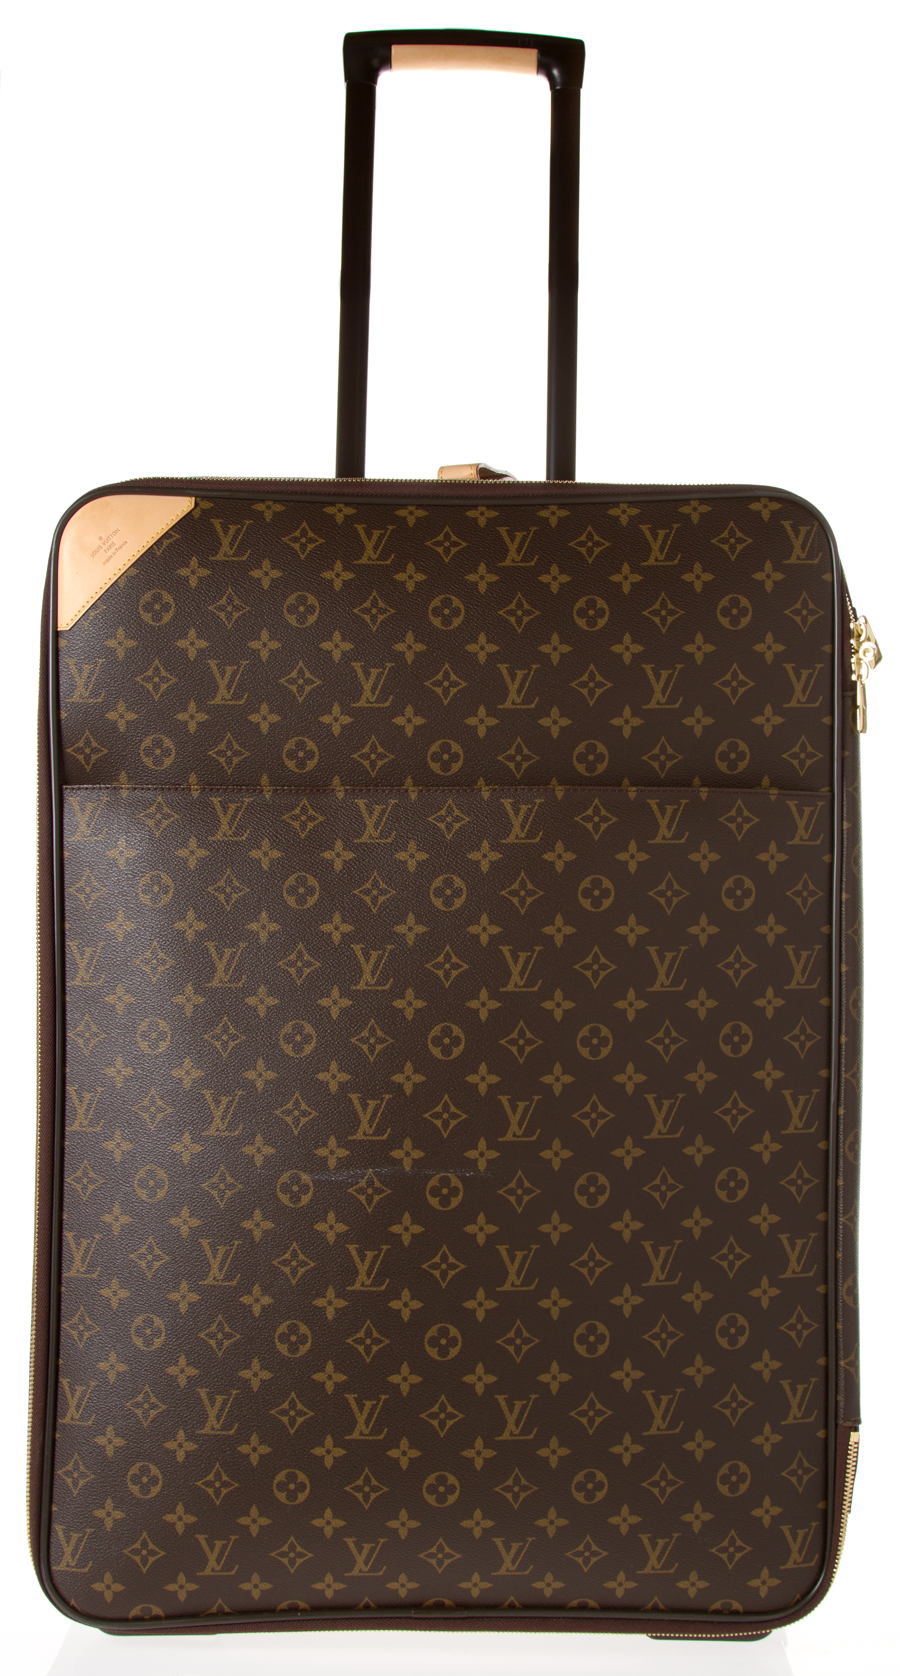 Louis Vuitton Travel Followshophers Bags Oh Yes Pinterest